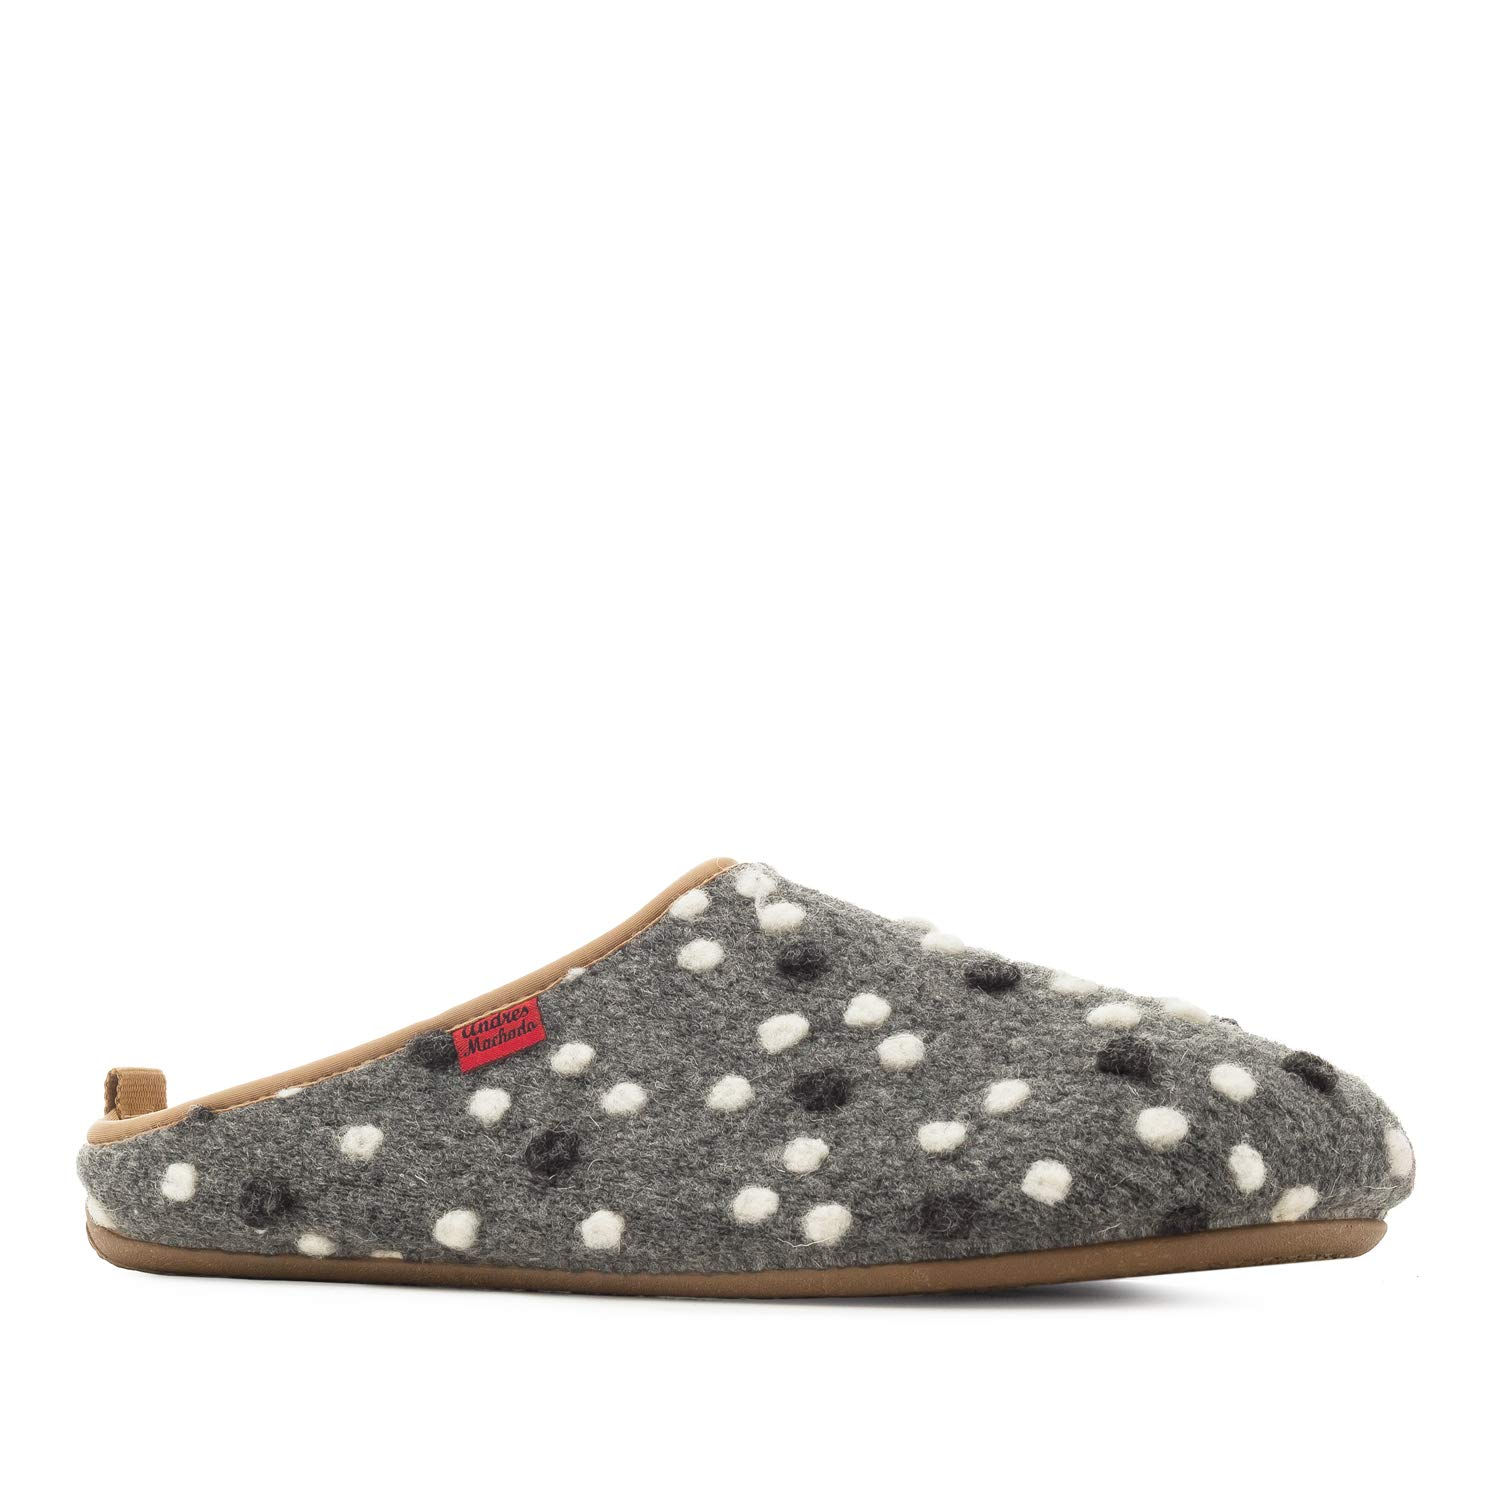 Andres Andres Machado.Dynamic.Chaussons Unisex in en 272 Feutre.Petites et Grandes Pointures 37/40-41/47.Made in SAIN Points Gris 12a0aad - automatisms.space